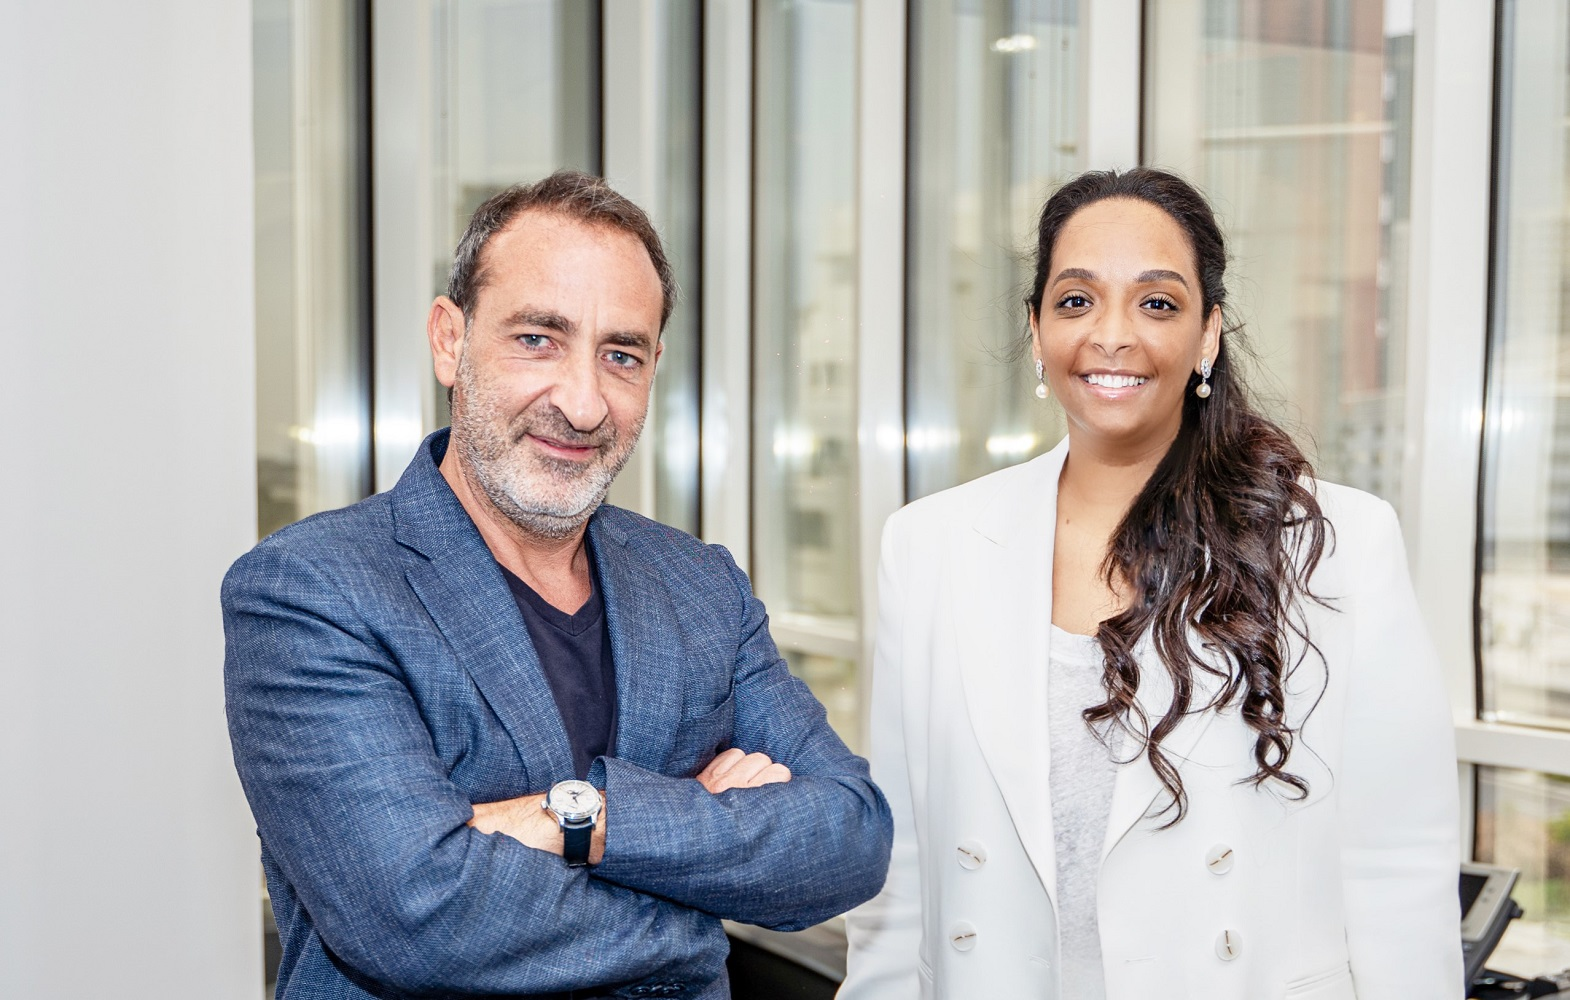 havas-pr-middle-east-rebrands-as-red-havas-middle-east-to-broaden-comms-offering-and-global-reach